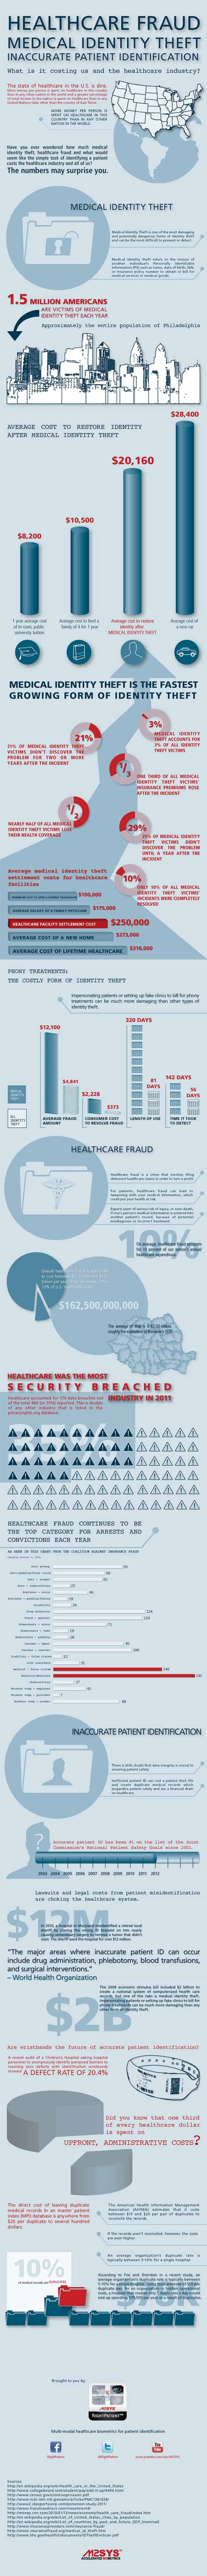 Infographic-on-medical-identity-theft-healthcare-fraud-and-patient-misidentification-s